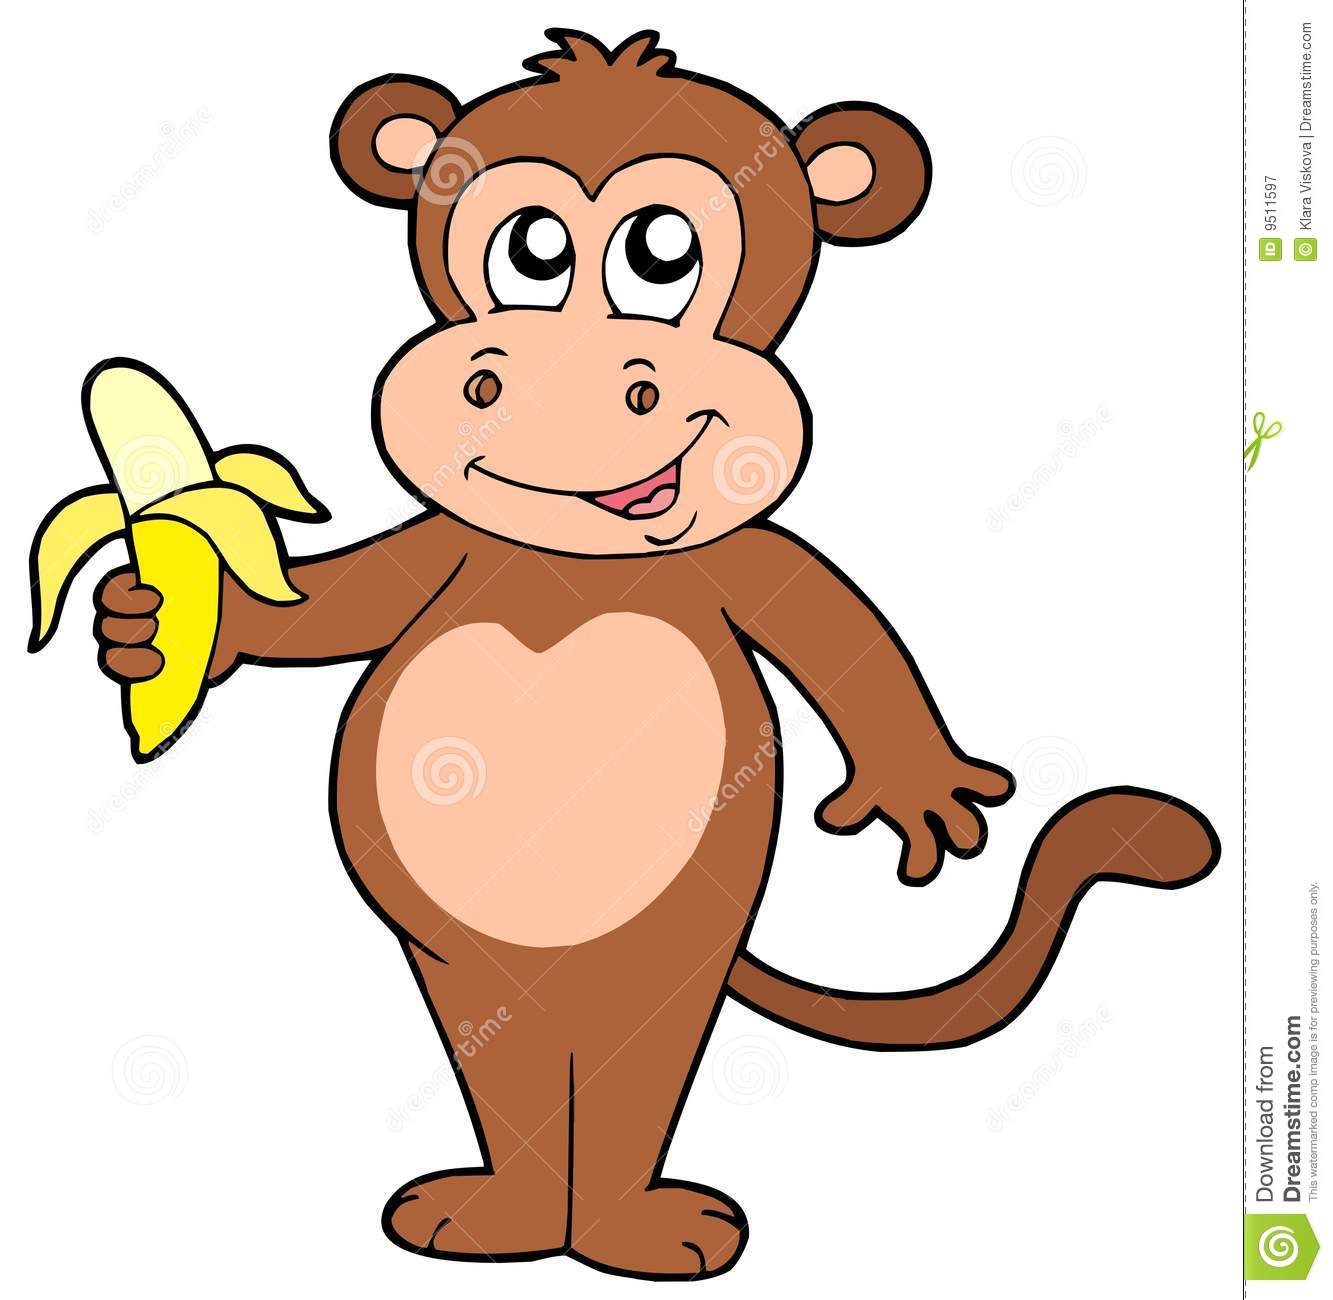 Monkey Eating Banana Stock Photos, Images, & Pictures.